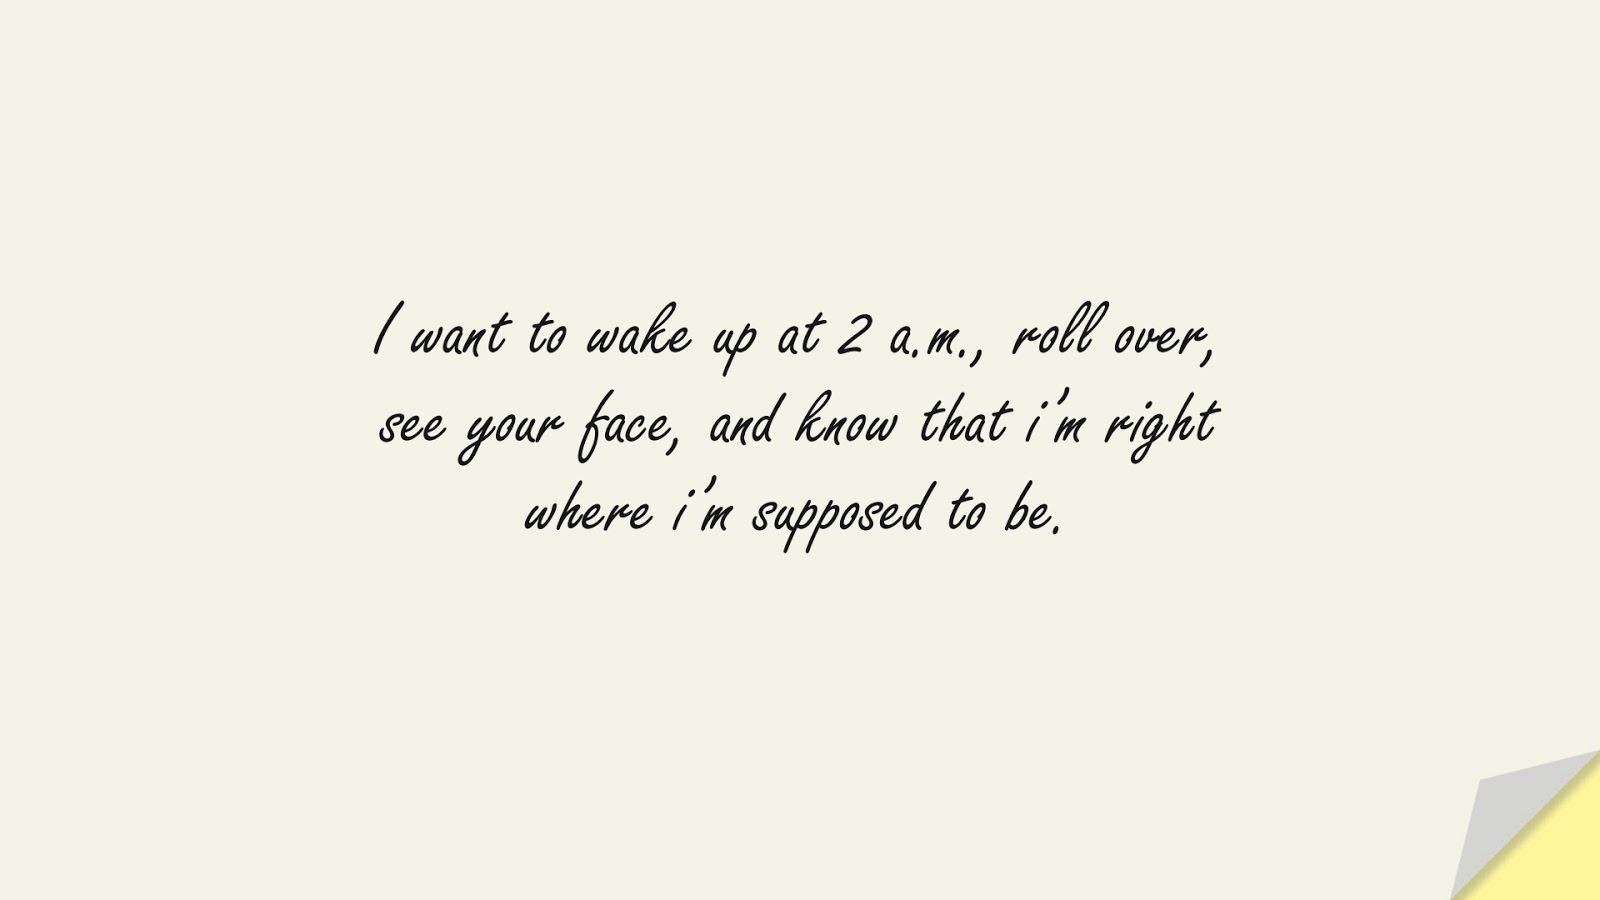 I want to wake up at 2 a.m., roll over, see your face, and know that i'm right where i'm supposed to be.FALSE